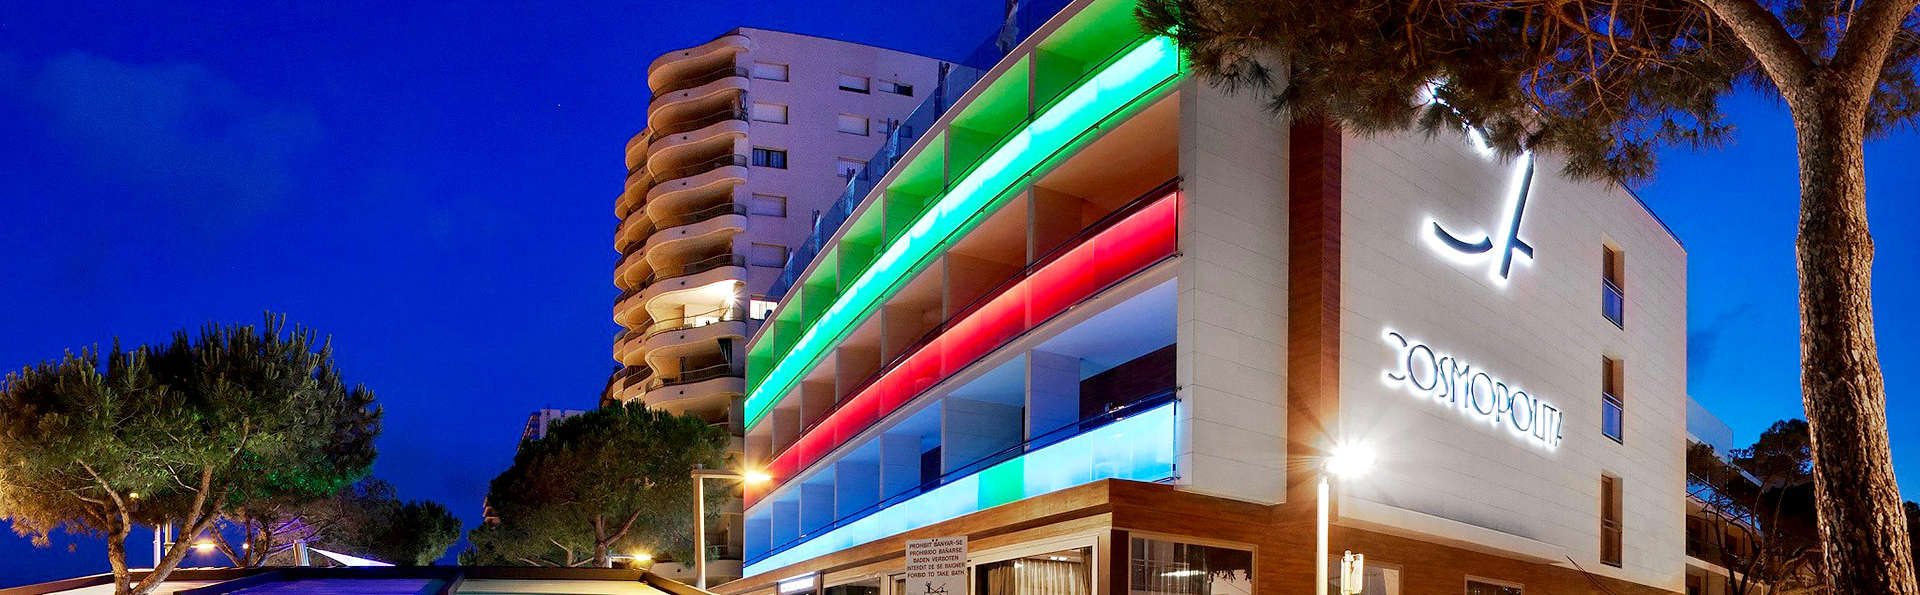 Cosmopolita Hotel Boutique & Spa - Edit_Front2.jpg